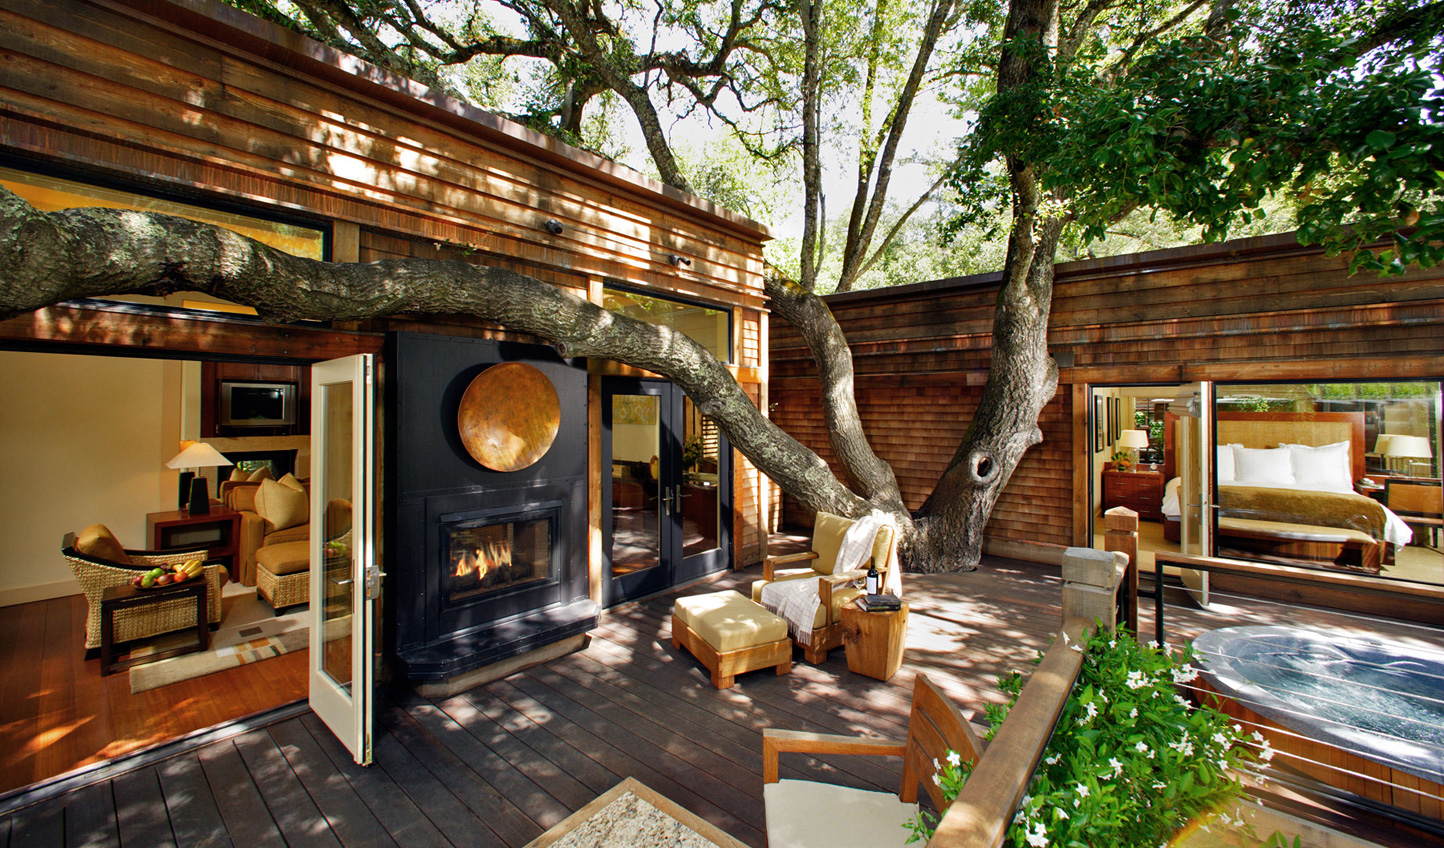 Nestle into an indulgent stay at Calistoga Ranch